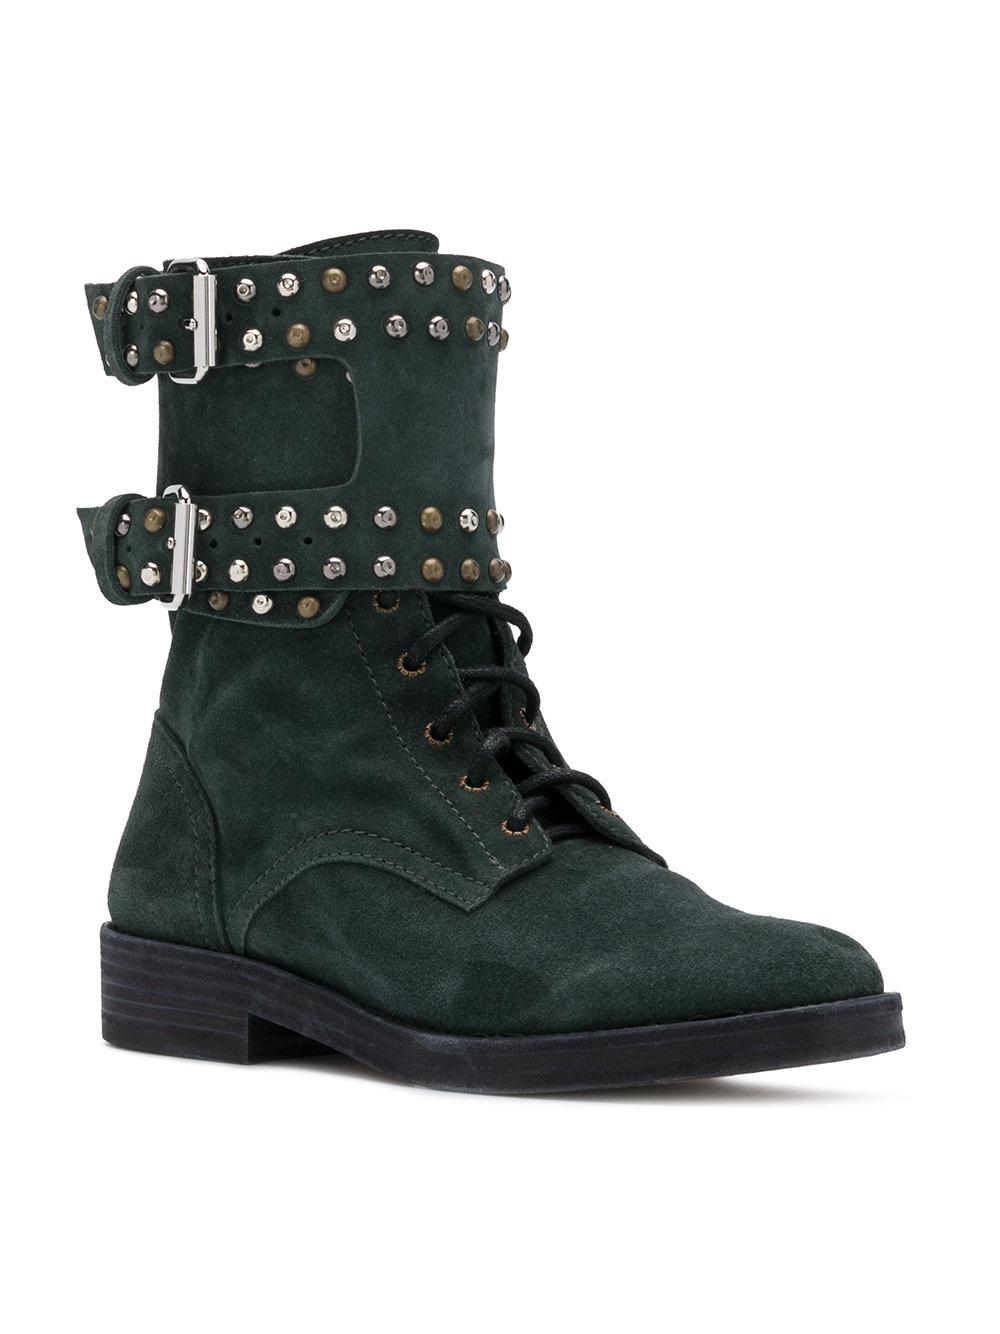 Isabel Marant Leather Teylon Ankle Boots in Black